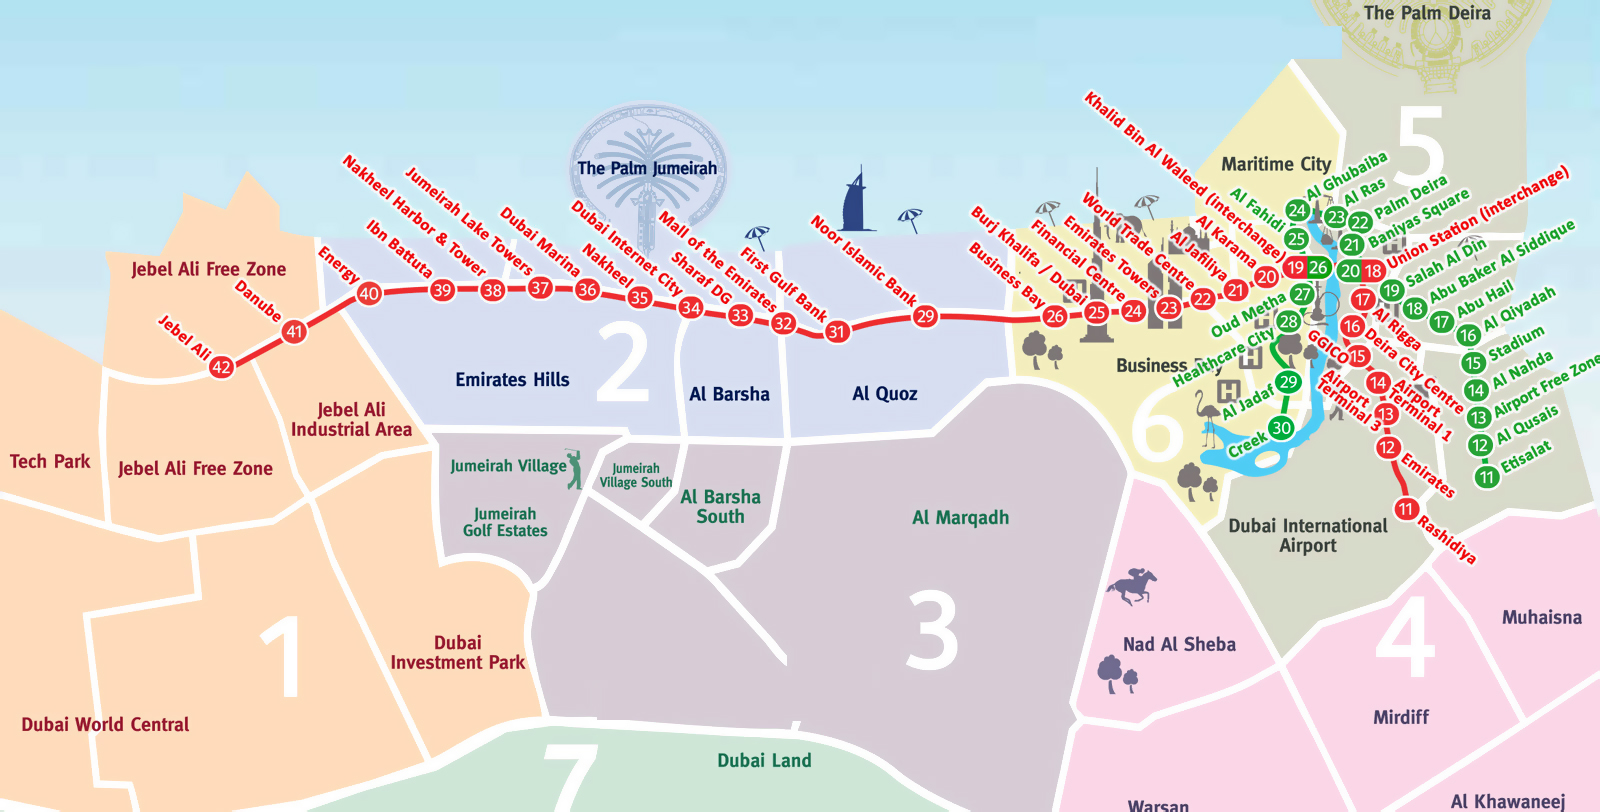 Map Of Asia Dubai.Large Metro Map Of Dubai Dubai Uae United Arab Emirates Asia